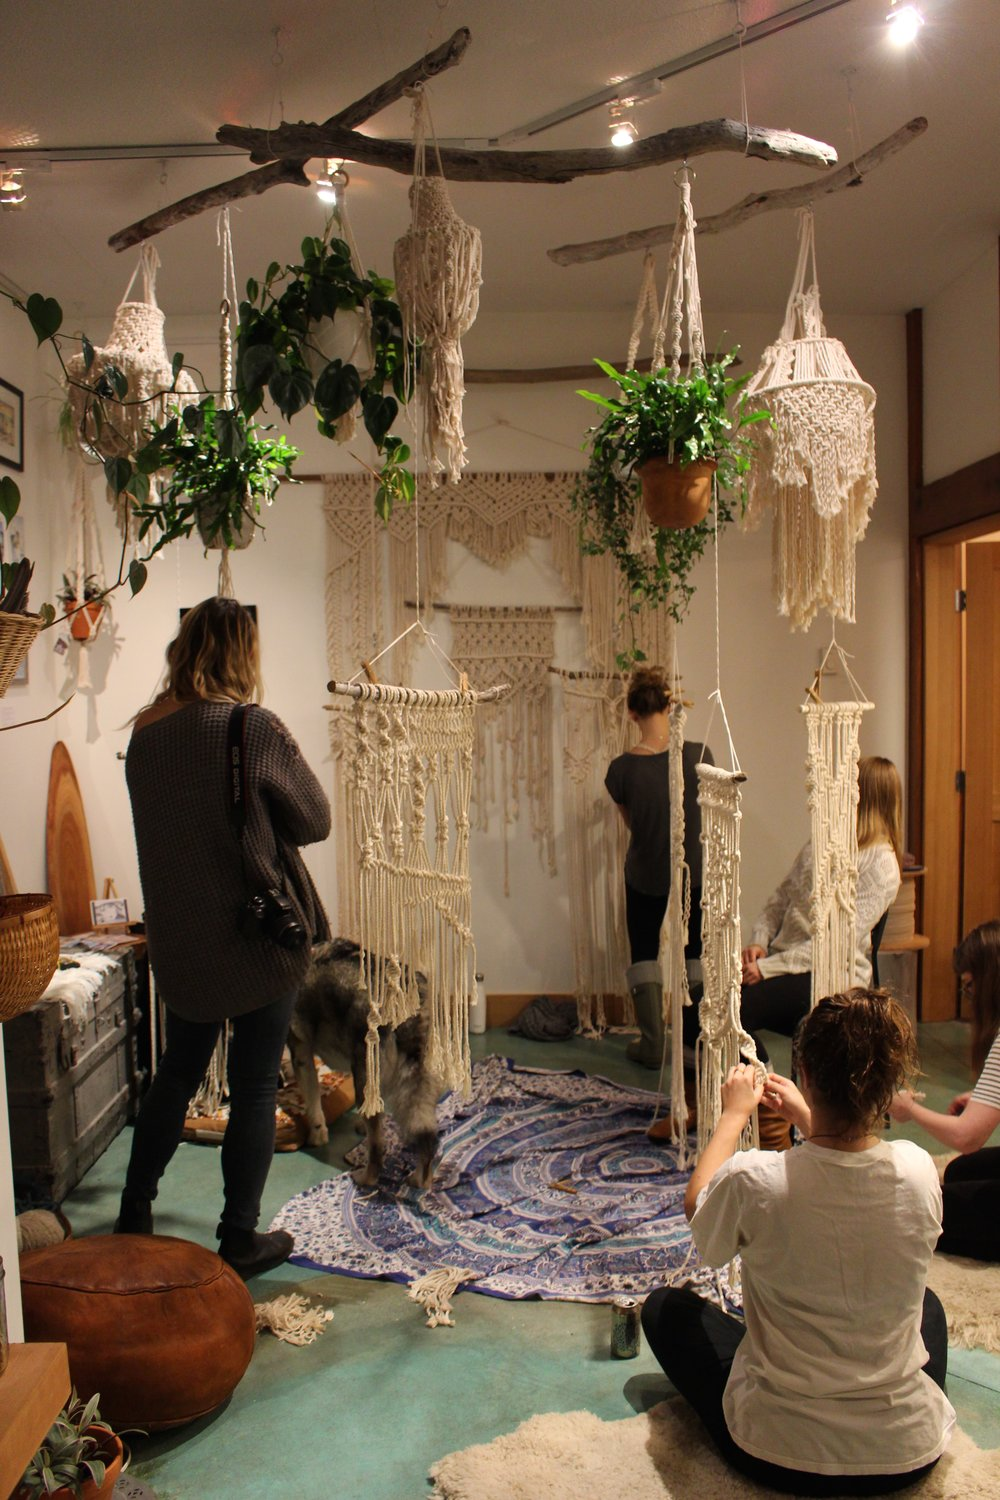 Everyone working on their own macrame pieces